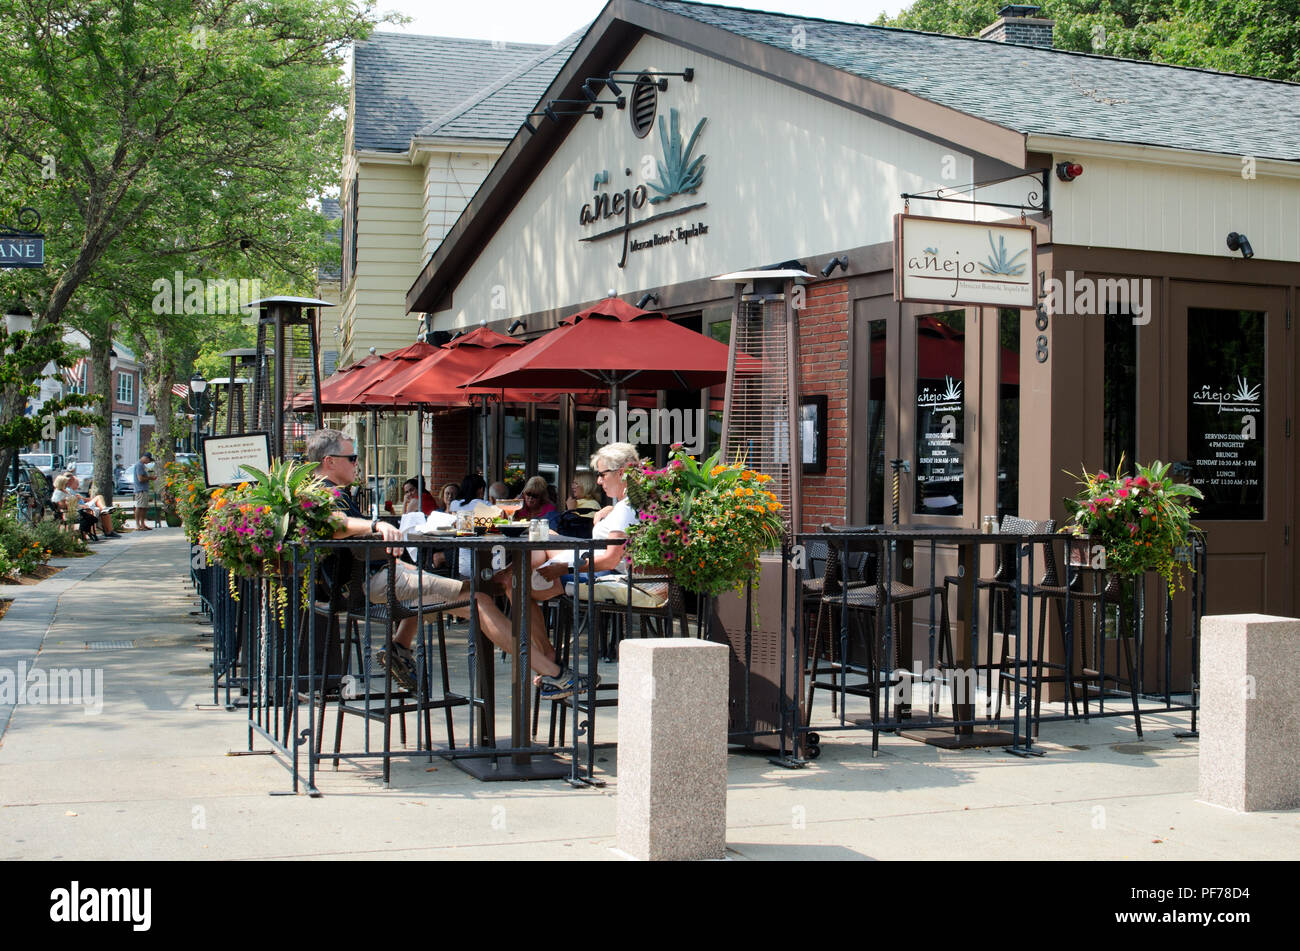 Downtown Falmouth, Cape Cod Massachusetts USA with people dining outdoors at Anejo Mexican restaurant and people walking on sidewalk - Stock Image